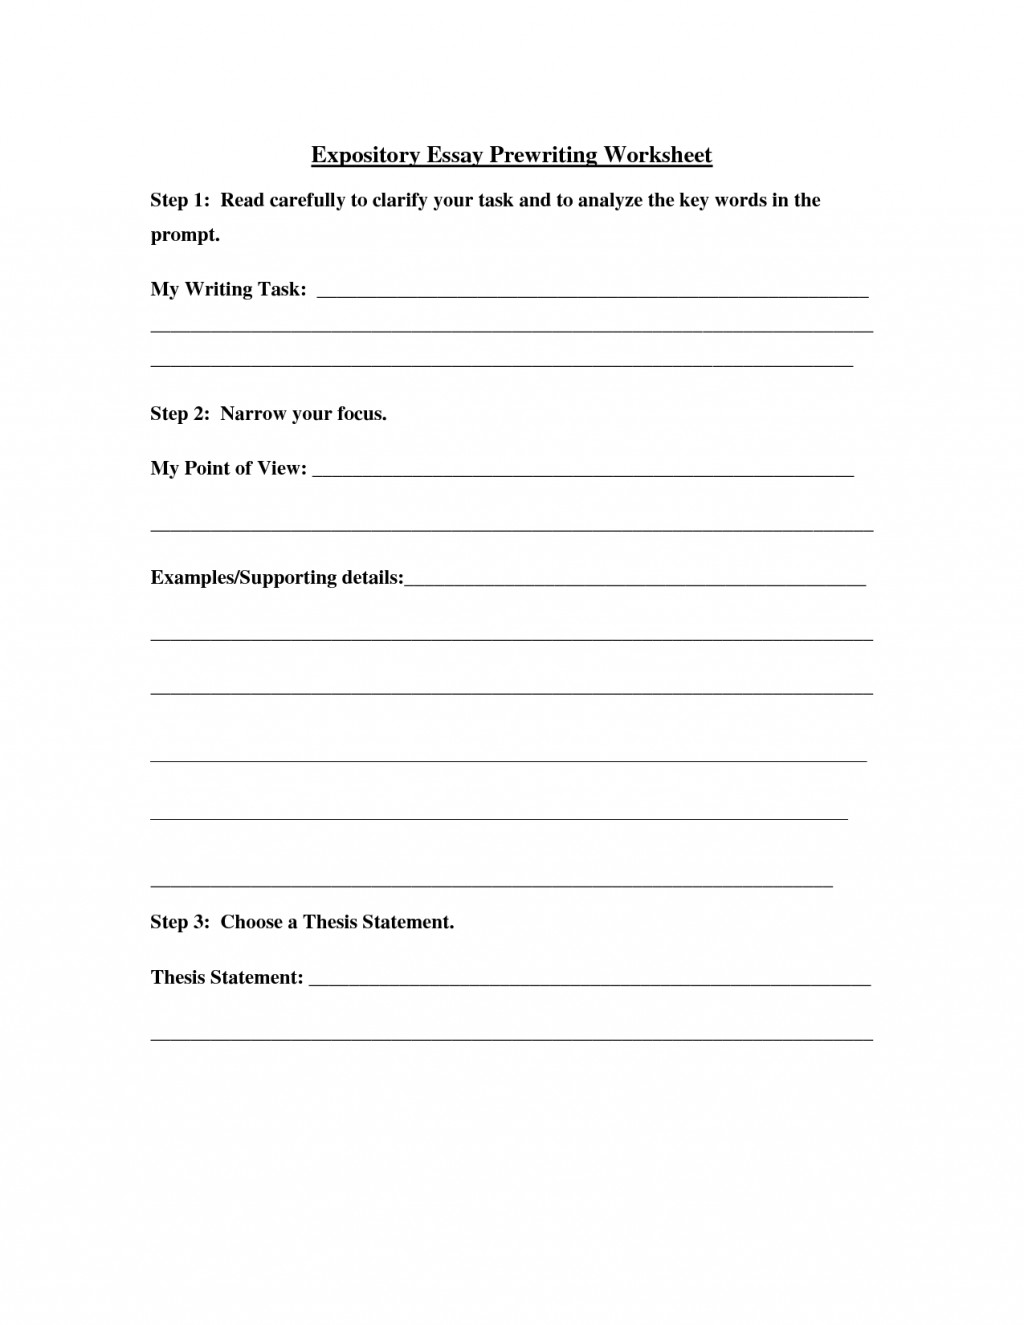 004 Pre Writing Worksheets Essay 295850 Example Written Formidable Essays Buy Already Online College For Sale Large